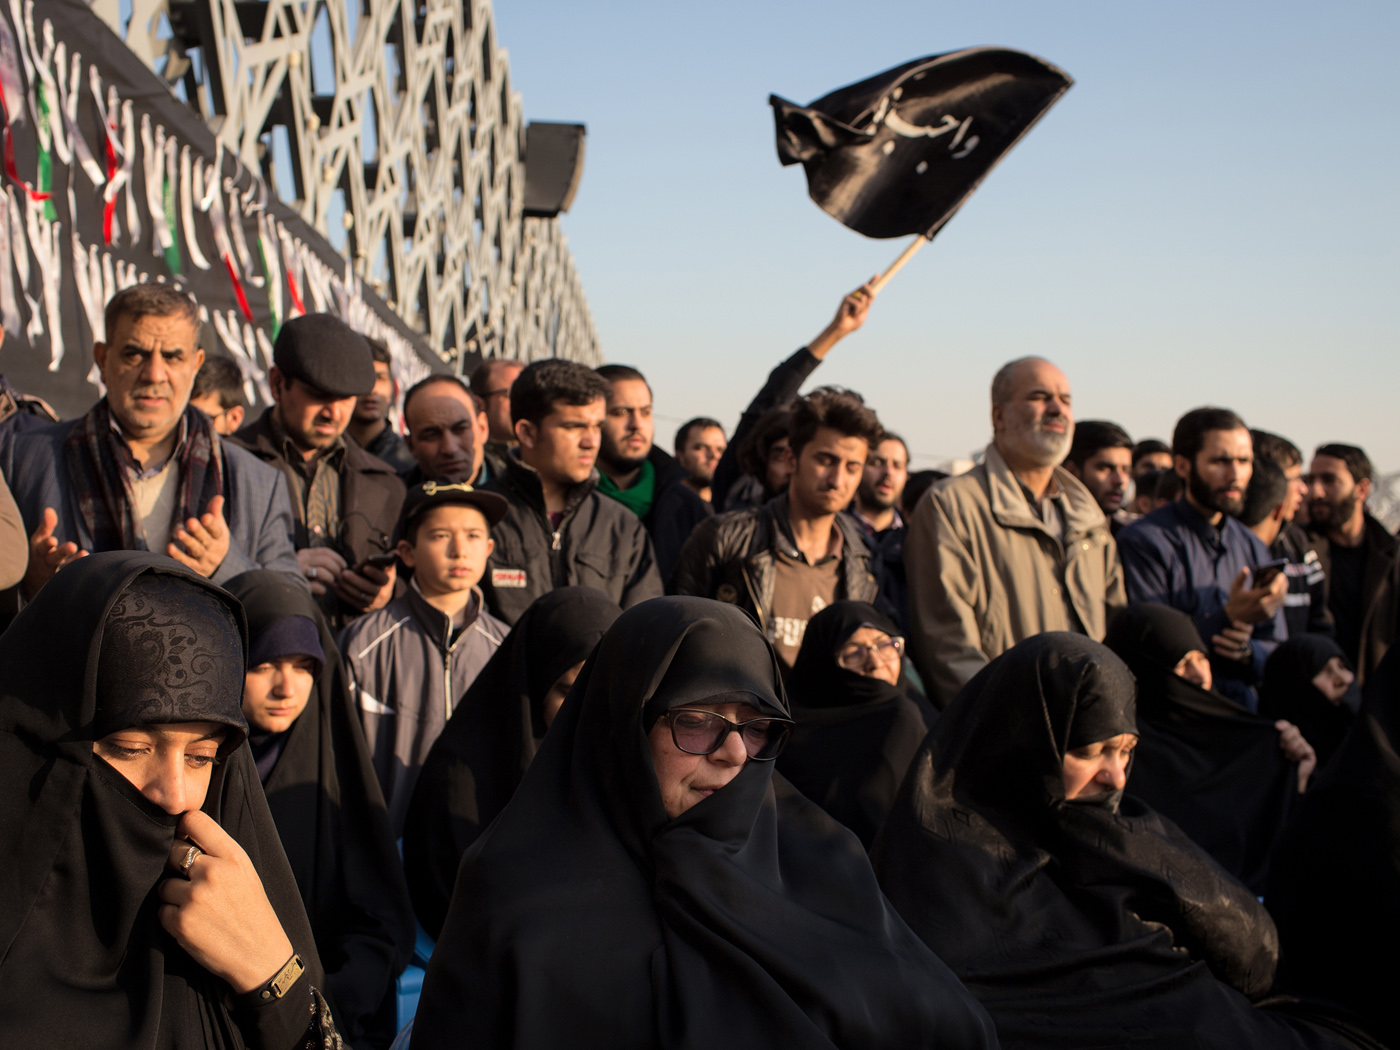 "Mother (wearing sunglasses) of Mohsen Hojjaji who was beheaded by IS in Syria sits among mothers of more famous martyrs in a front row as some thousand supporters of the Islamic Republic came together in Tehran for a ceremony branded as ""Daughters of the Revolution"" on January 31st, 2019 setting off a series of arranged events marking the 40th anniversary of the 1979 Revolution."